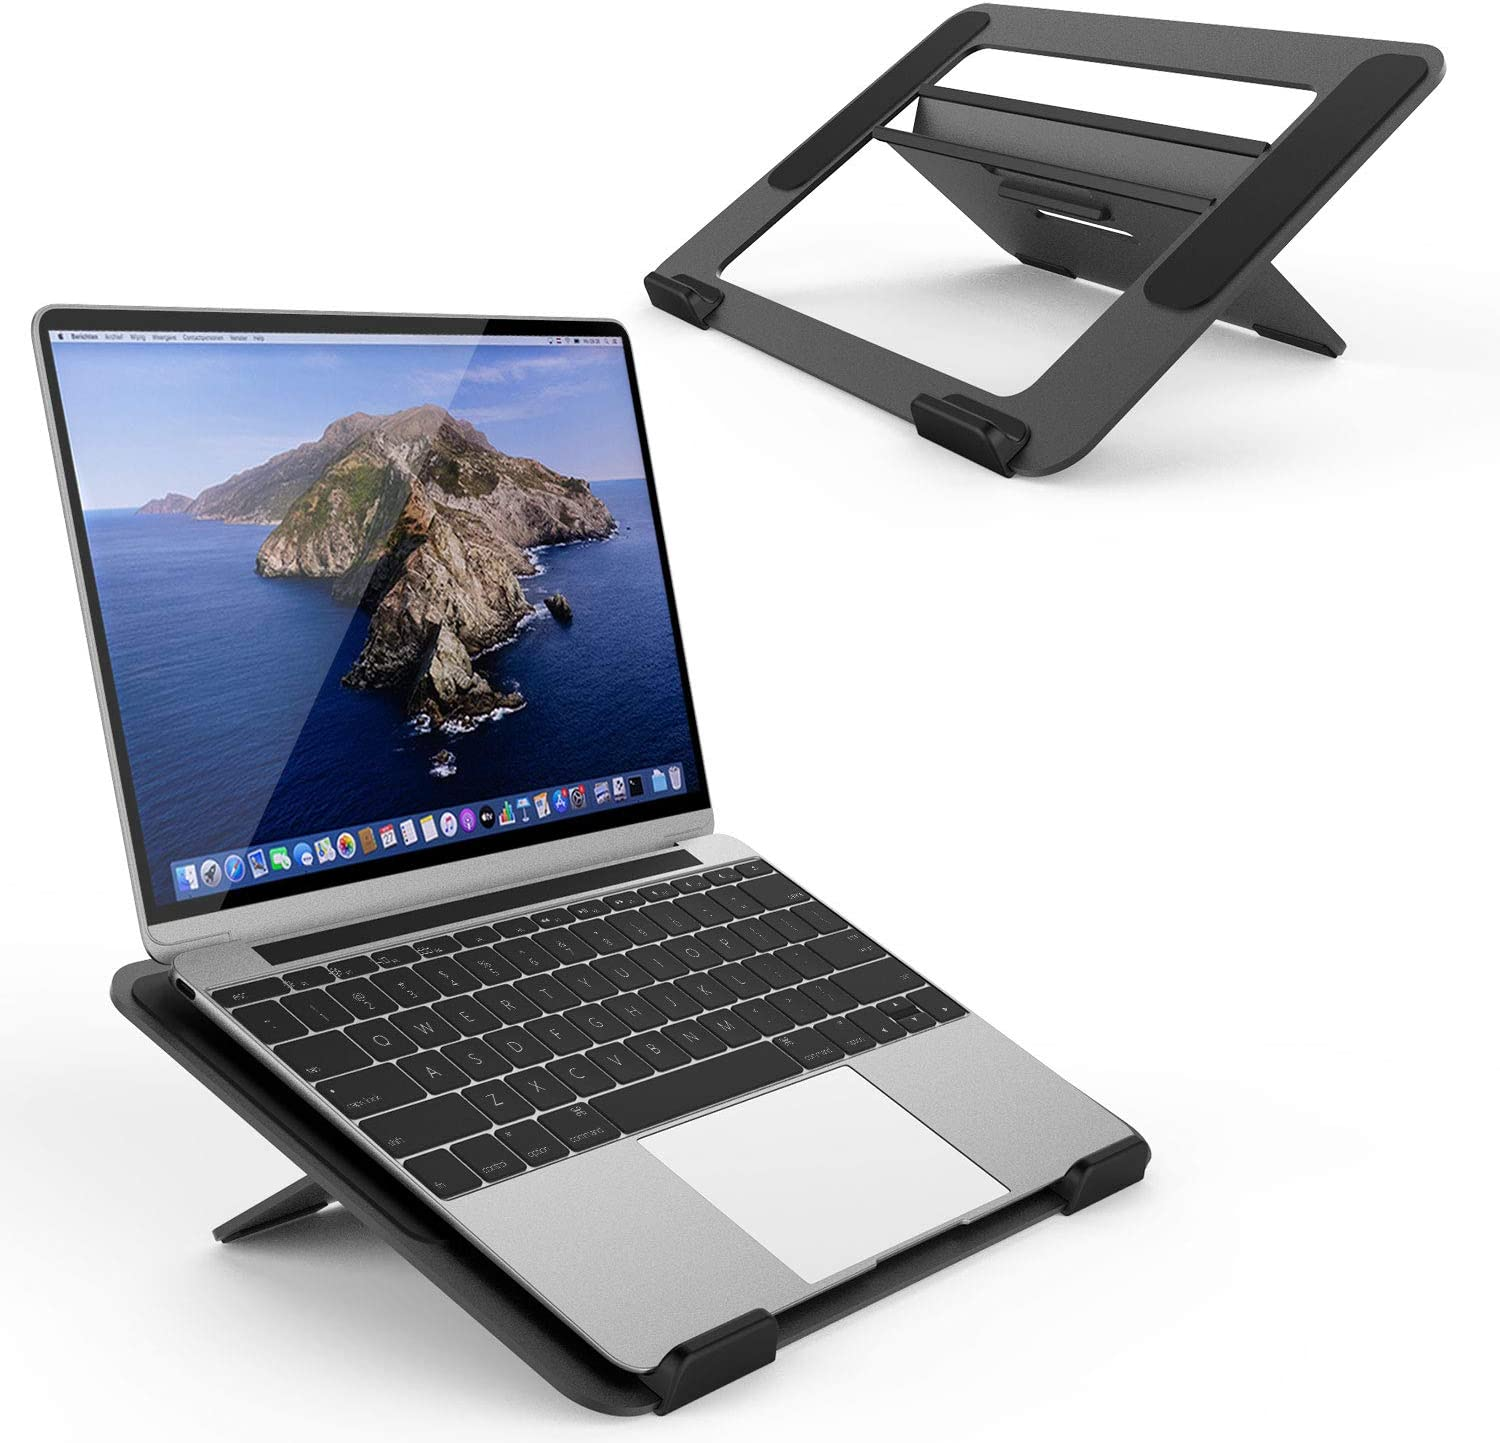 "Avankin YS104 Adjustable Aluminum Laptop Cooling Stand for Desk, Portable Holder for iPad Book, Foldable Computer Riser with Ergonomic Height for MacBook Pro/Air, Dell, HP and More 9.7-16"" Notebook"